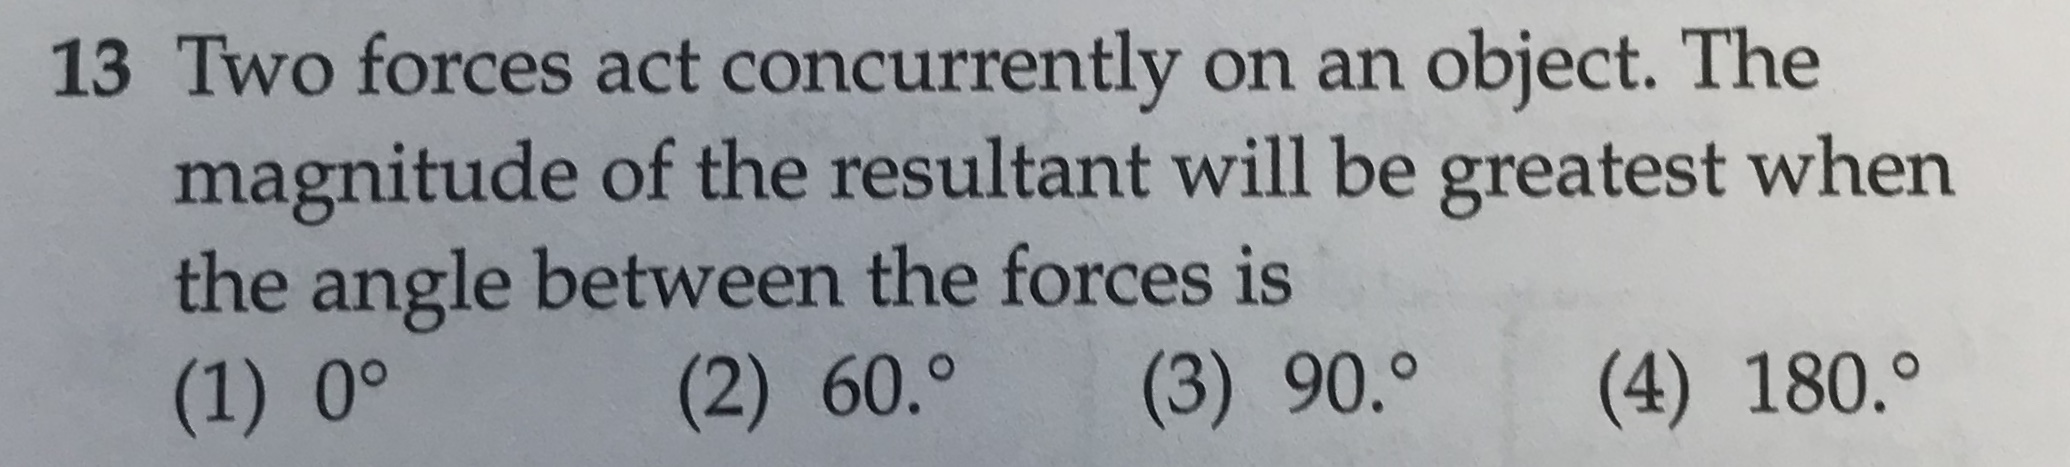 13 Two forces act concurrently on an object. The magnitude of the resultant will be greatest when the angle between the forces is (1) 0° (2) 60.° (3) 90.0 (4) 180.°